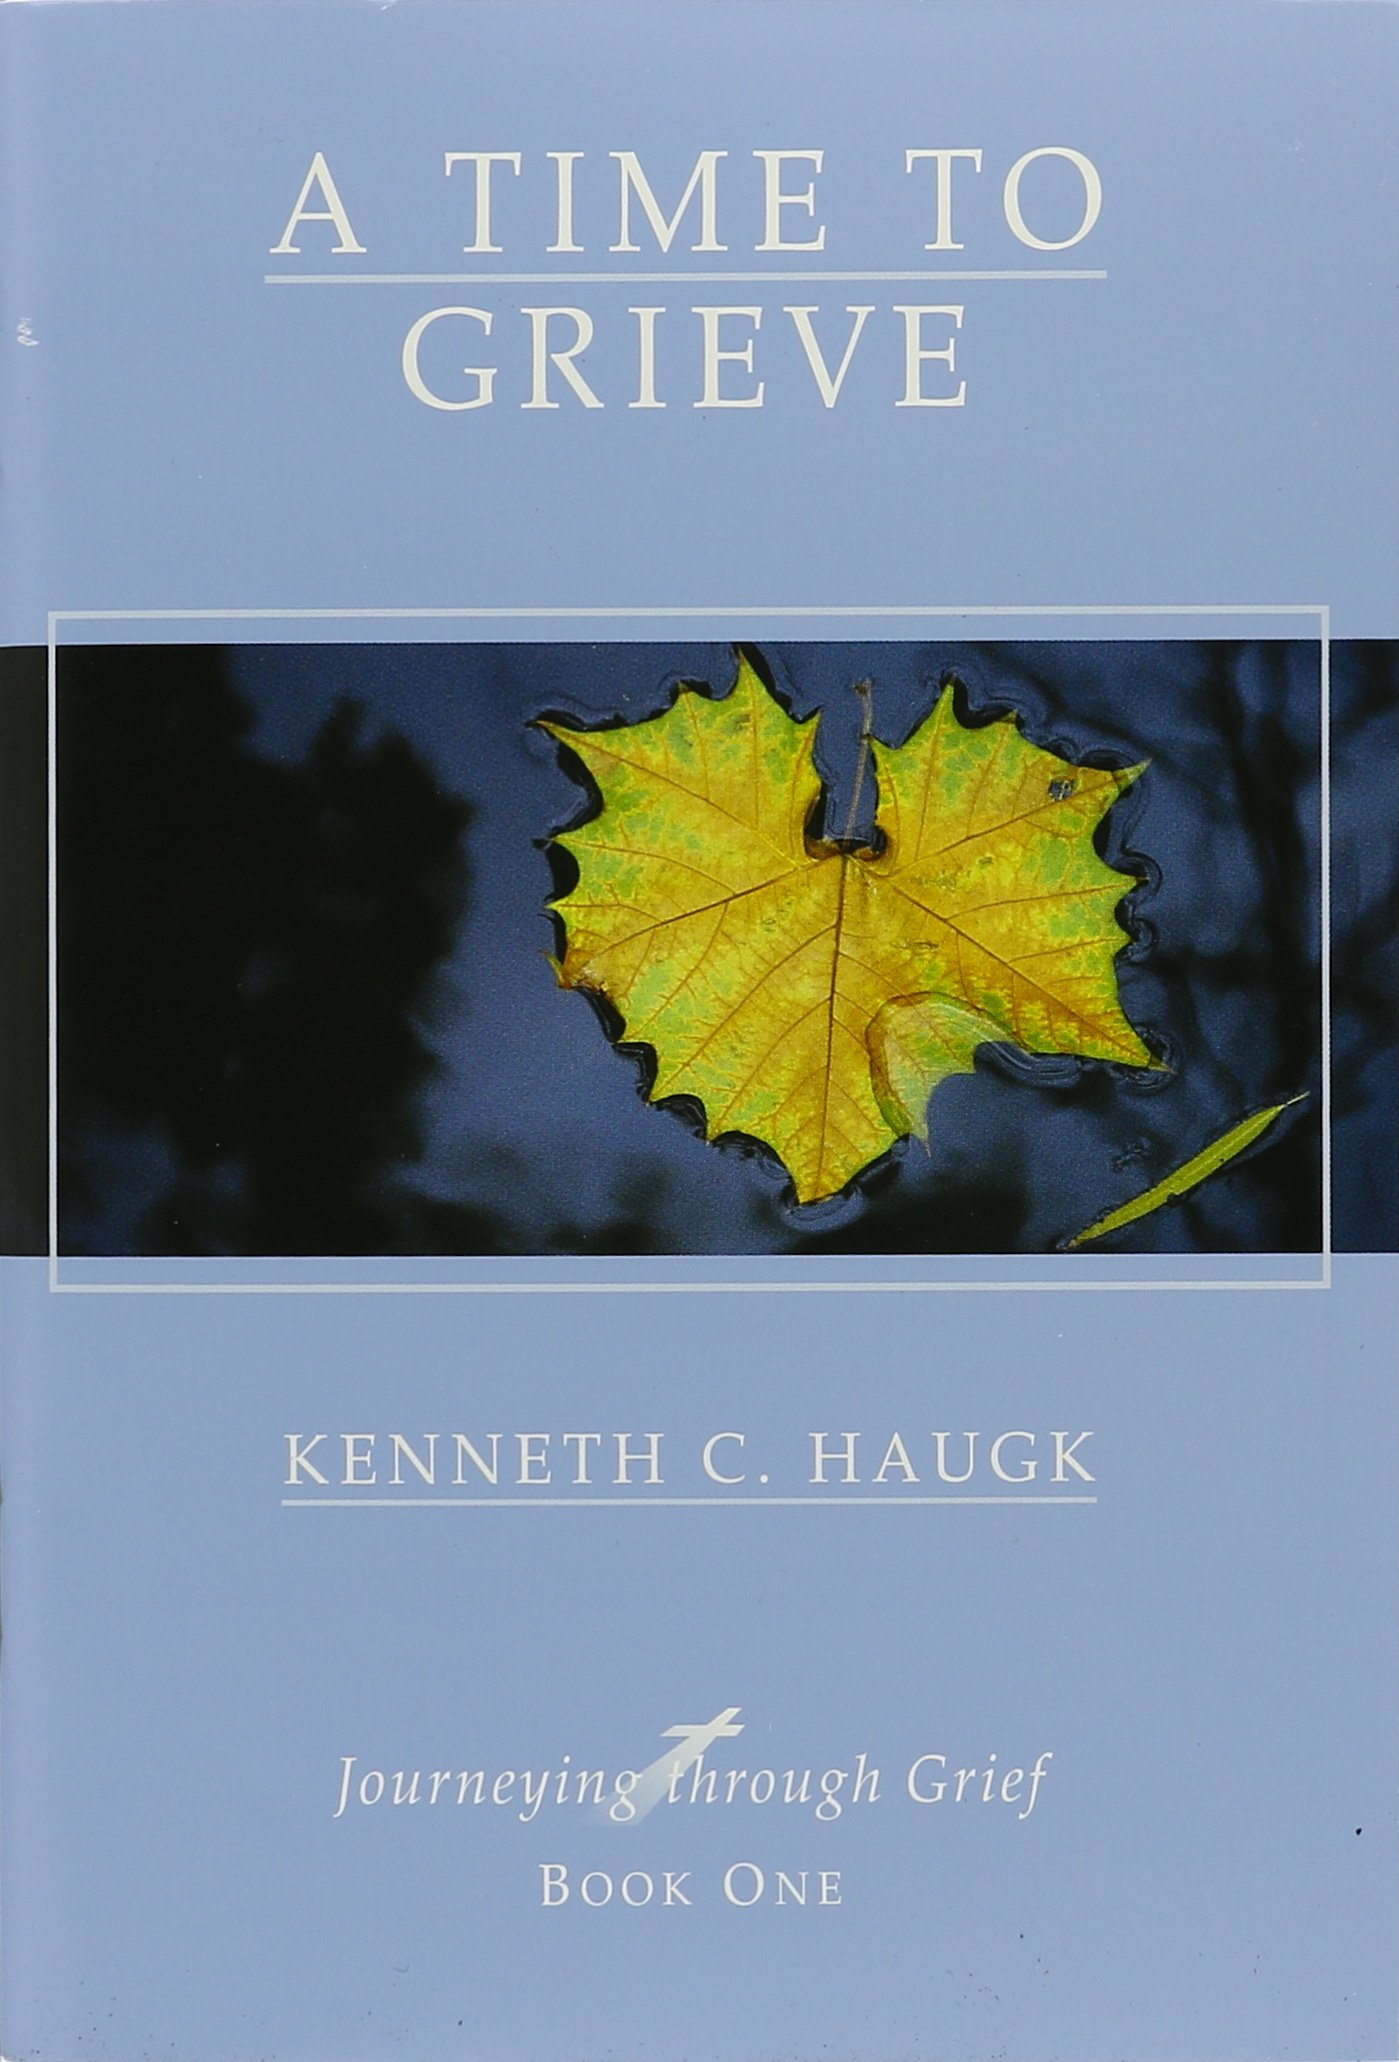 Download Set of 4 Small Books on Journeying Through Grief By Kenneth C. Haugk; 1) a Time to Grieve, 2) Experiencing Grief, 3) Finding Hope and Healing, 4) Rebuilding and Remembering pdf epub